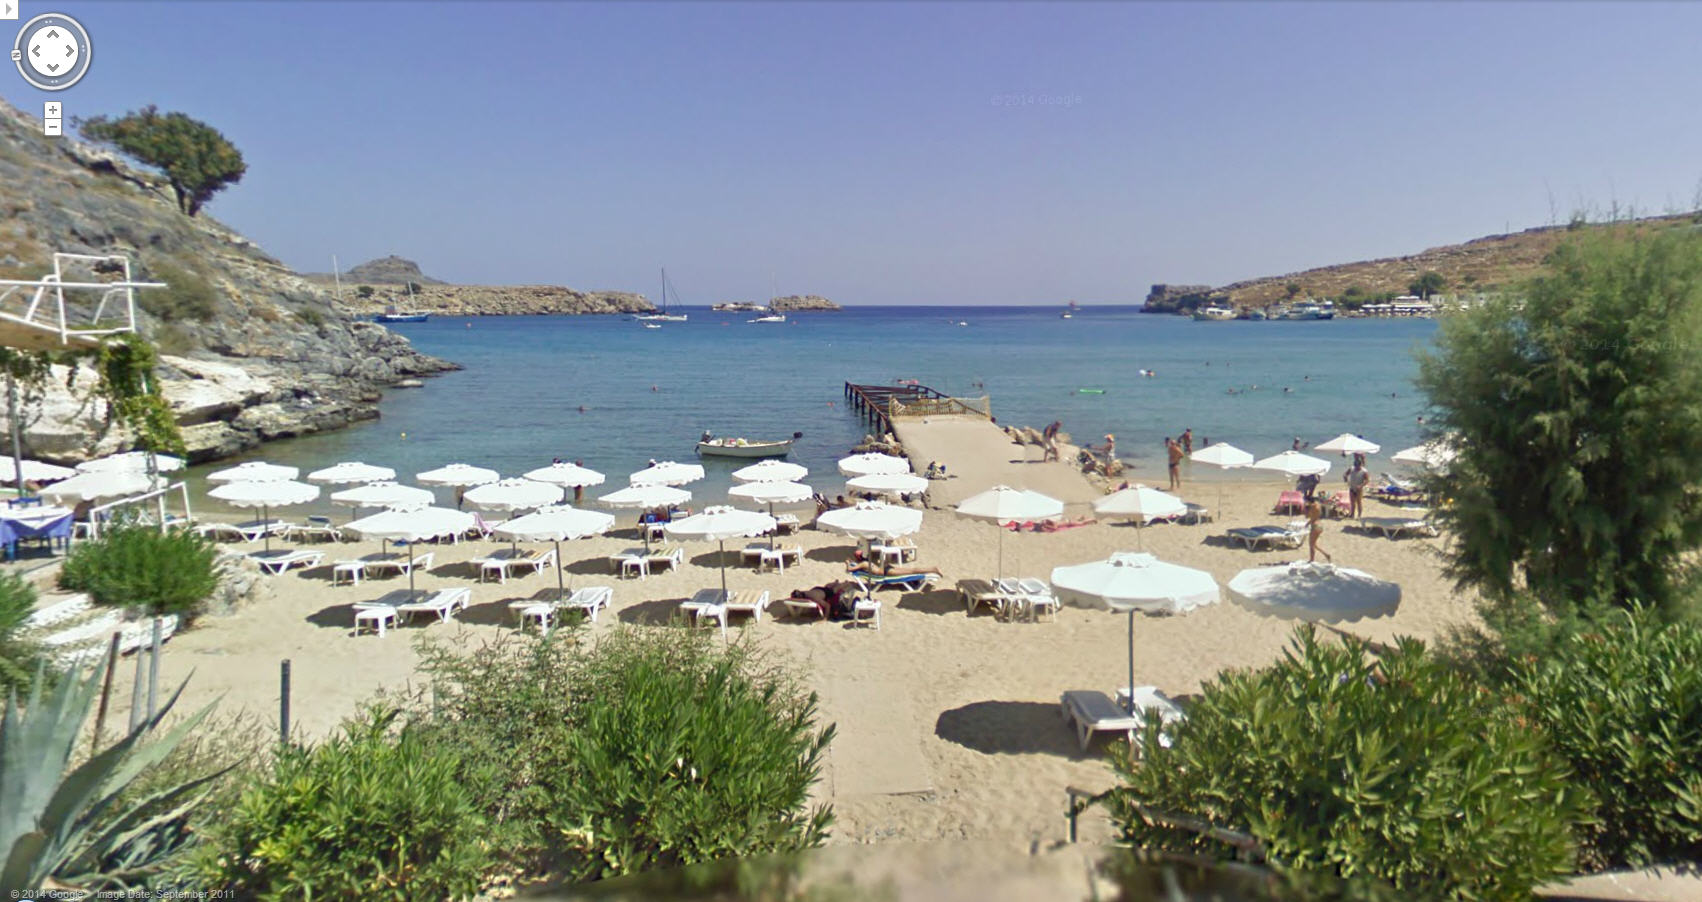 Greece is now on Google Street View